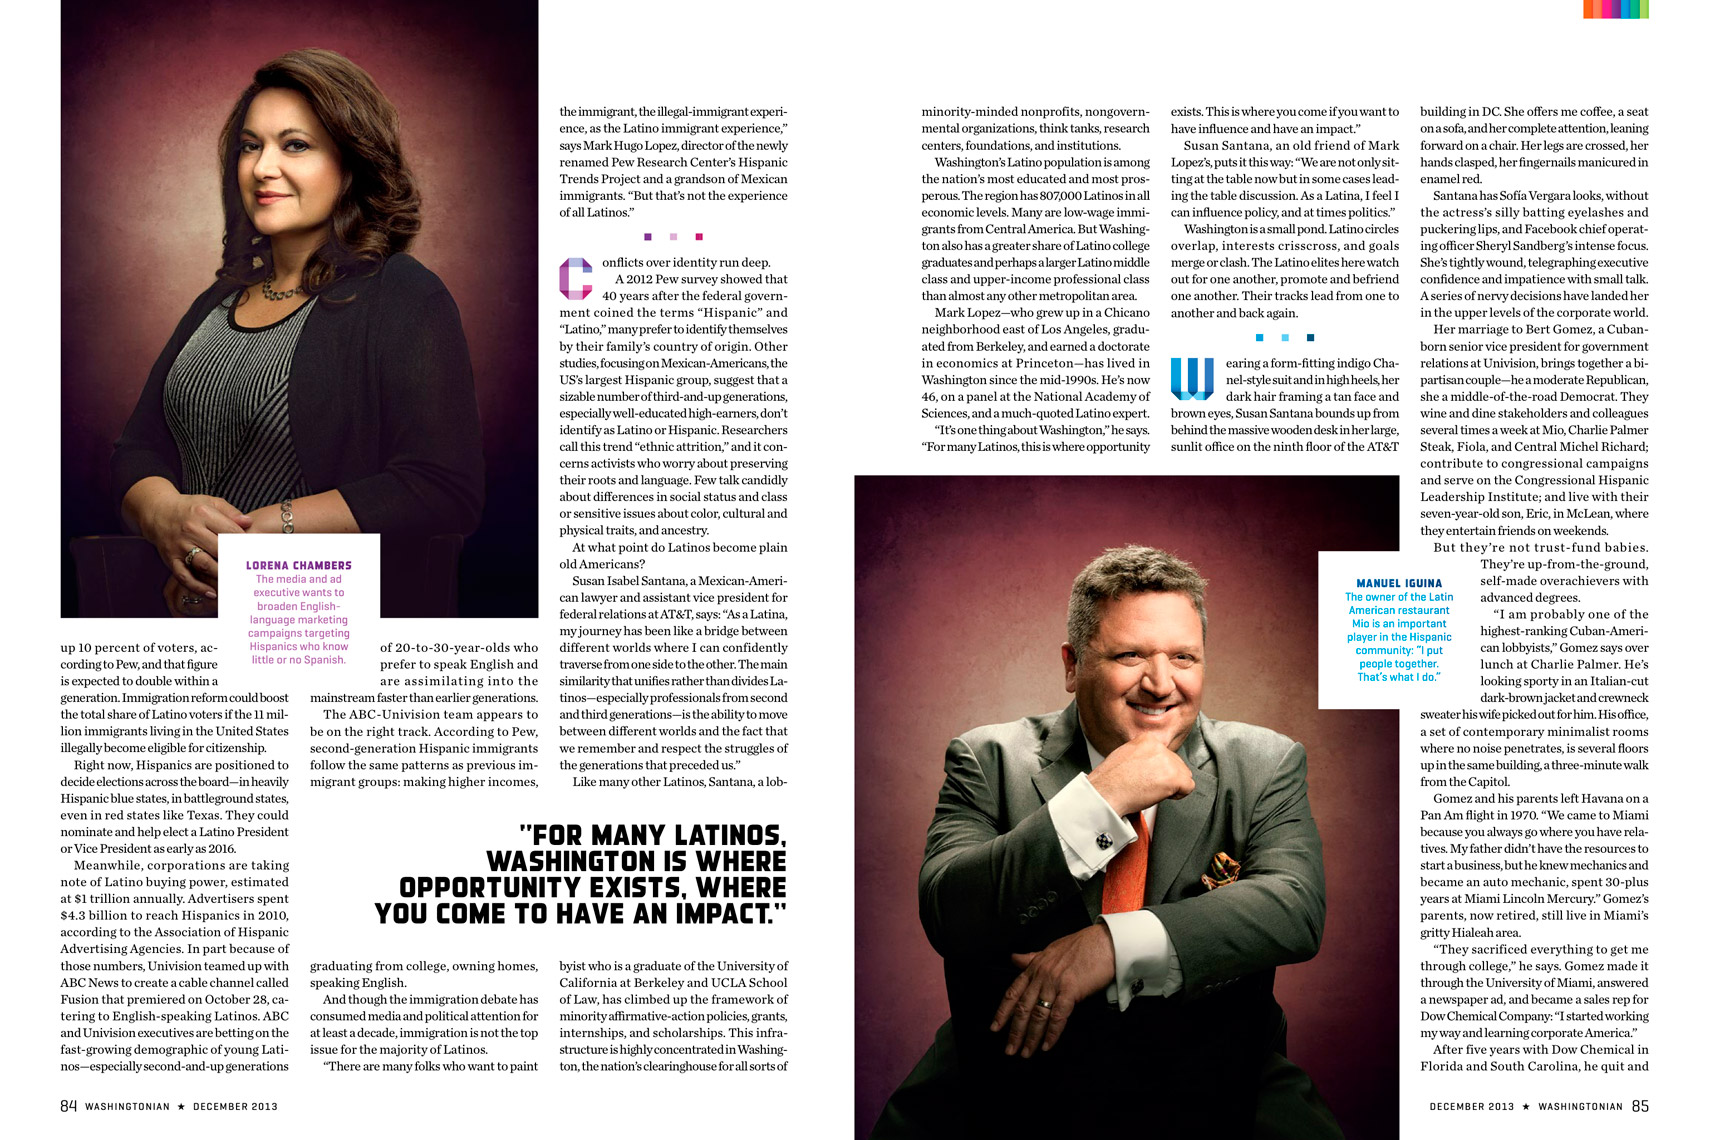 Washingtonian Magazine - December 2013 - OUR TIME Feature - Spread 3 - photographer Chris Crisman